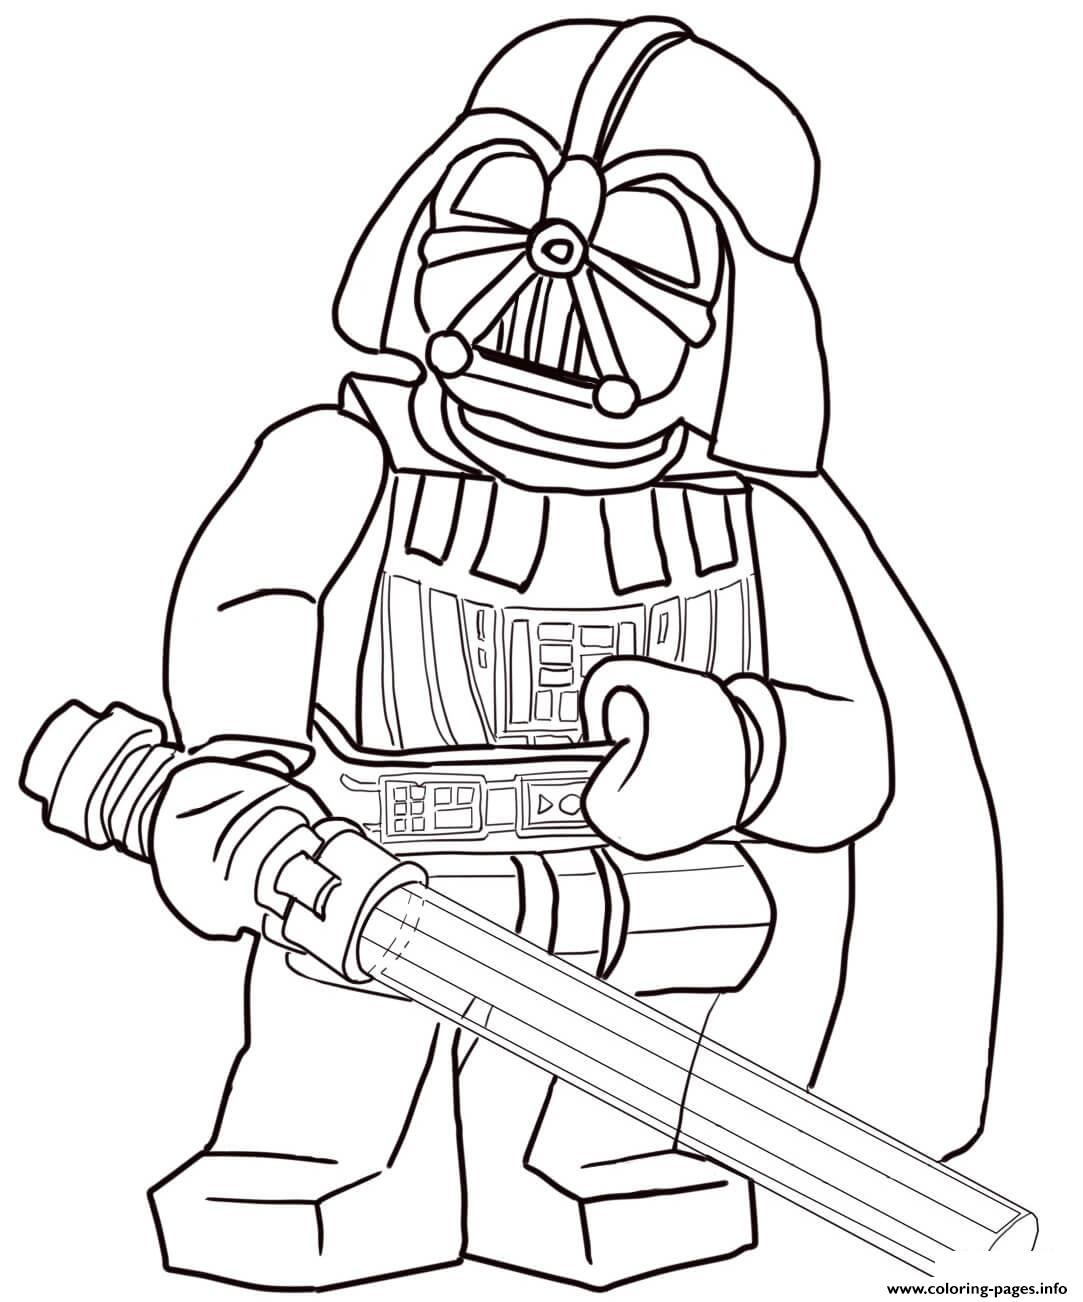 Lego Star Wars 129 coloring pages